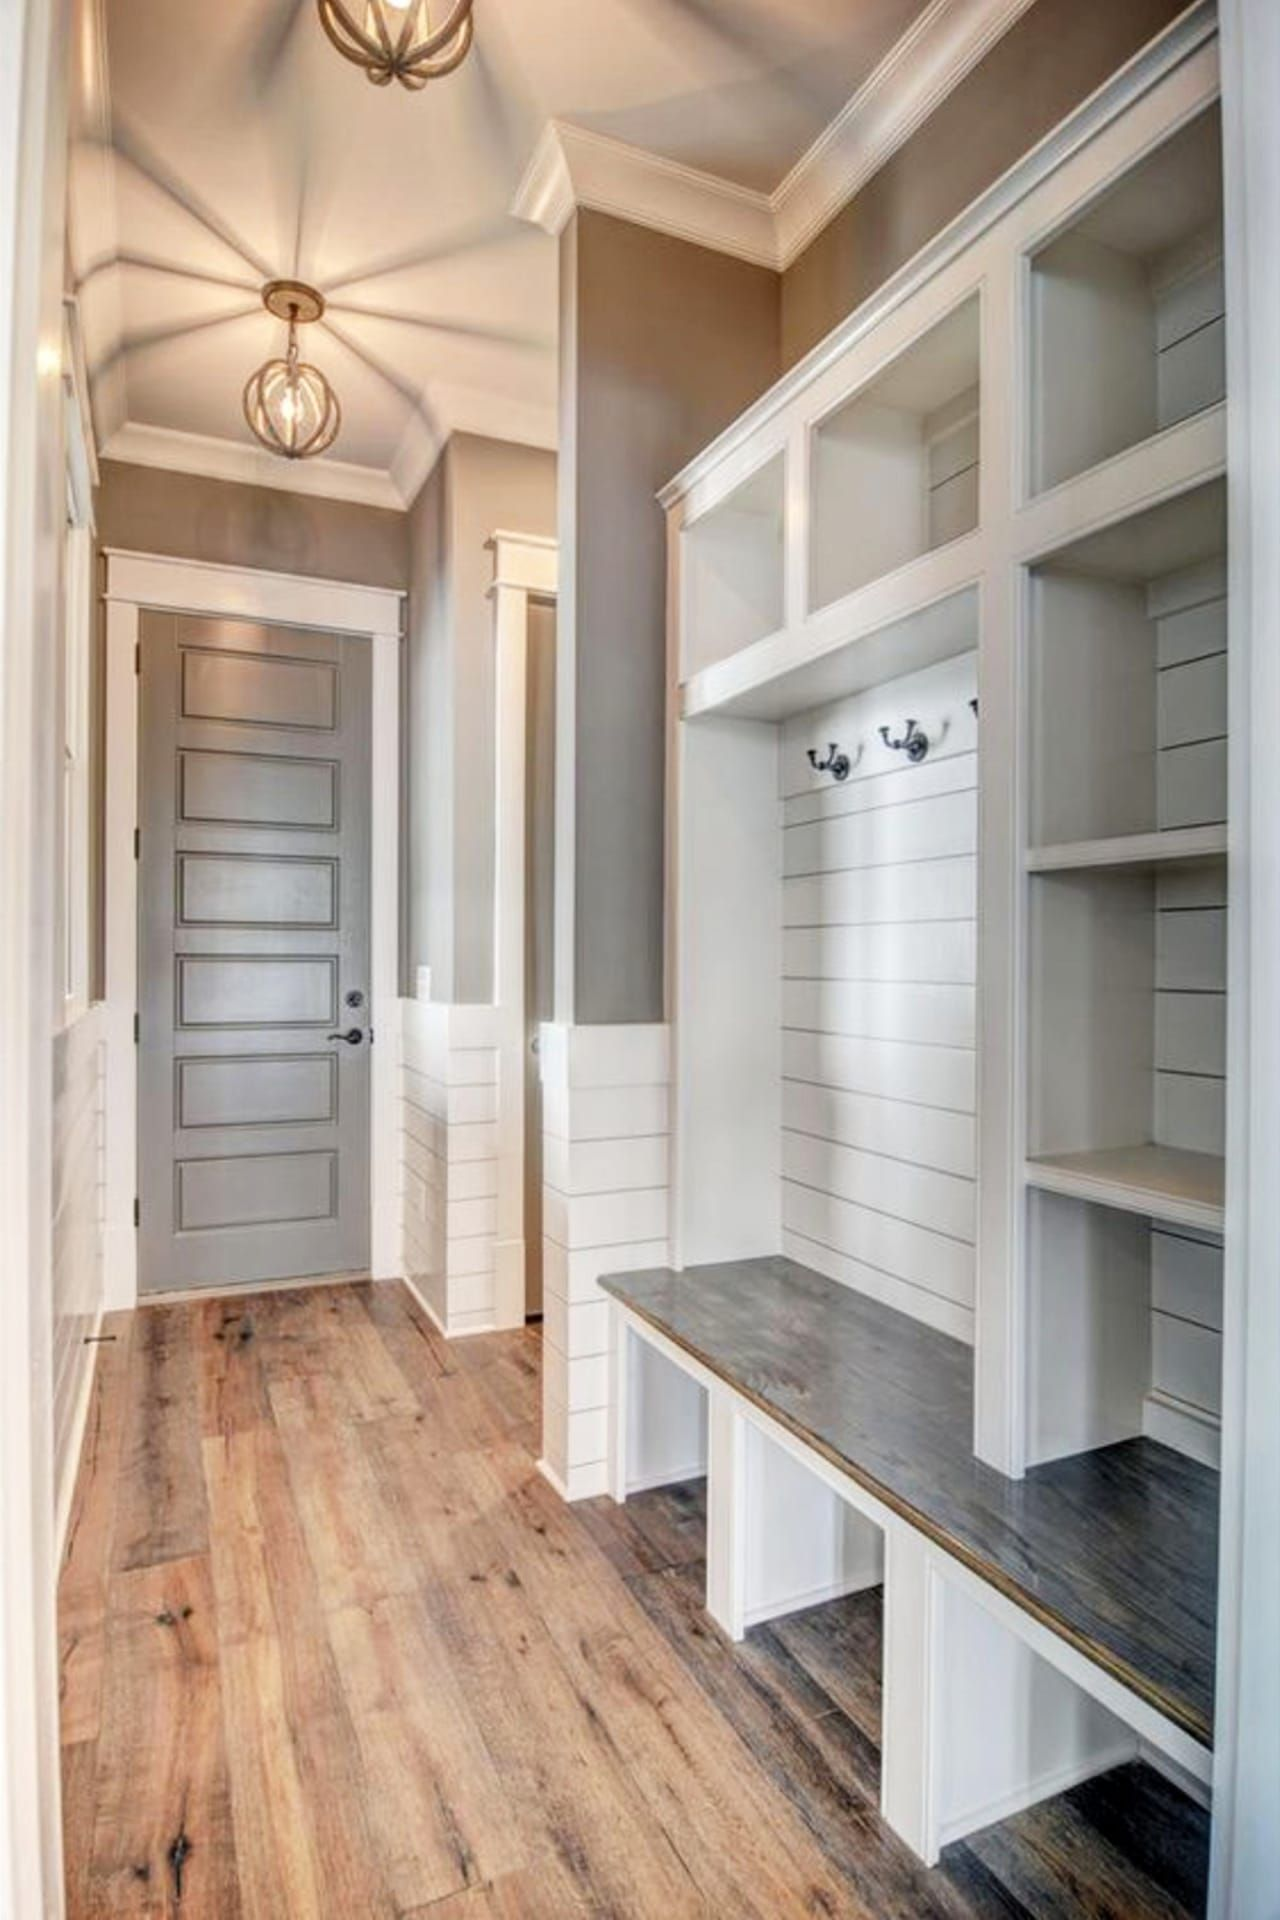 Mudroom Ideas - Farmhouse Mudroom Decor and Designs We Love images